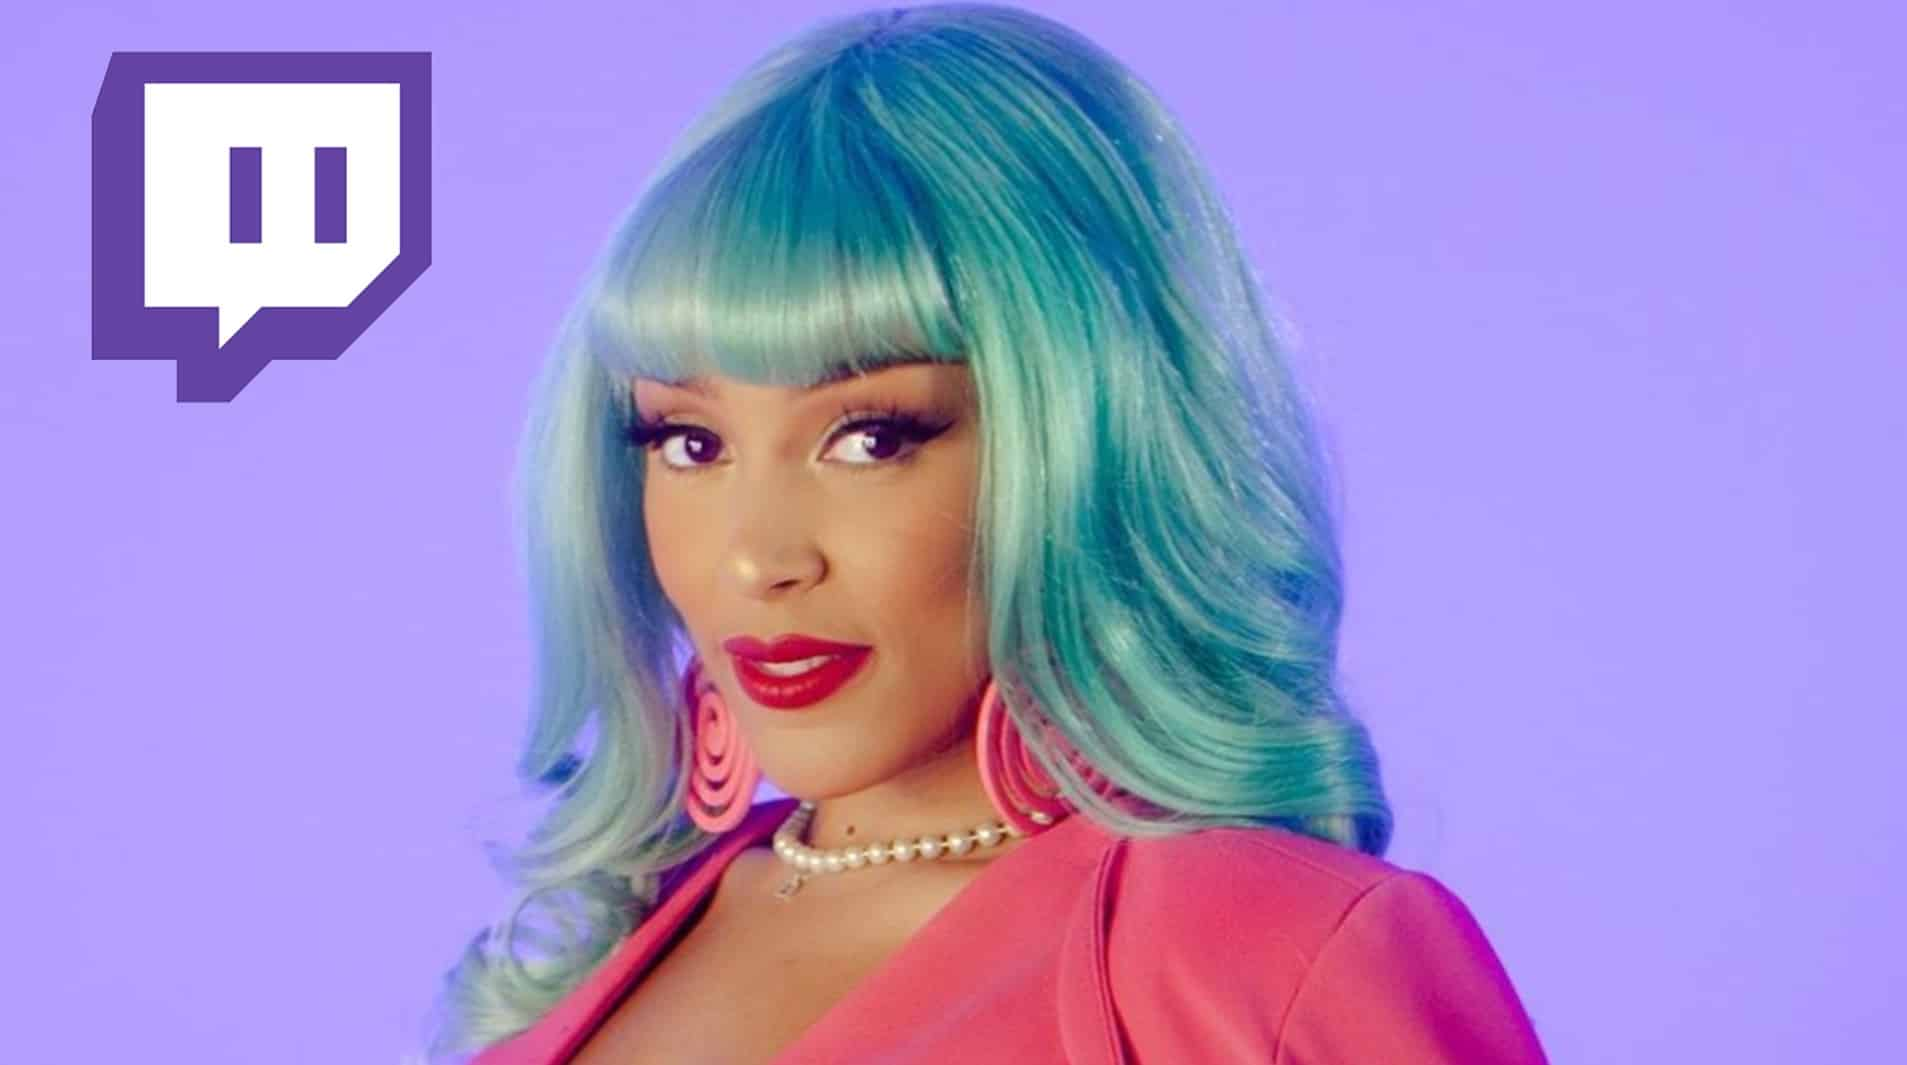 Doja Cat streaming on Twitch draws response from Corpse Husband, Pokimane, more